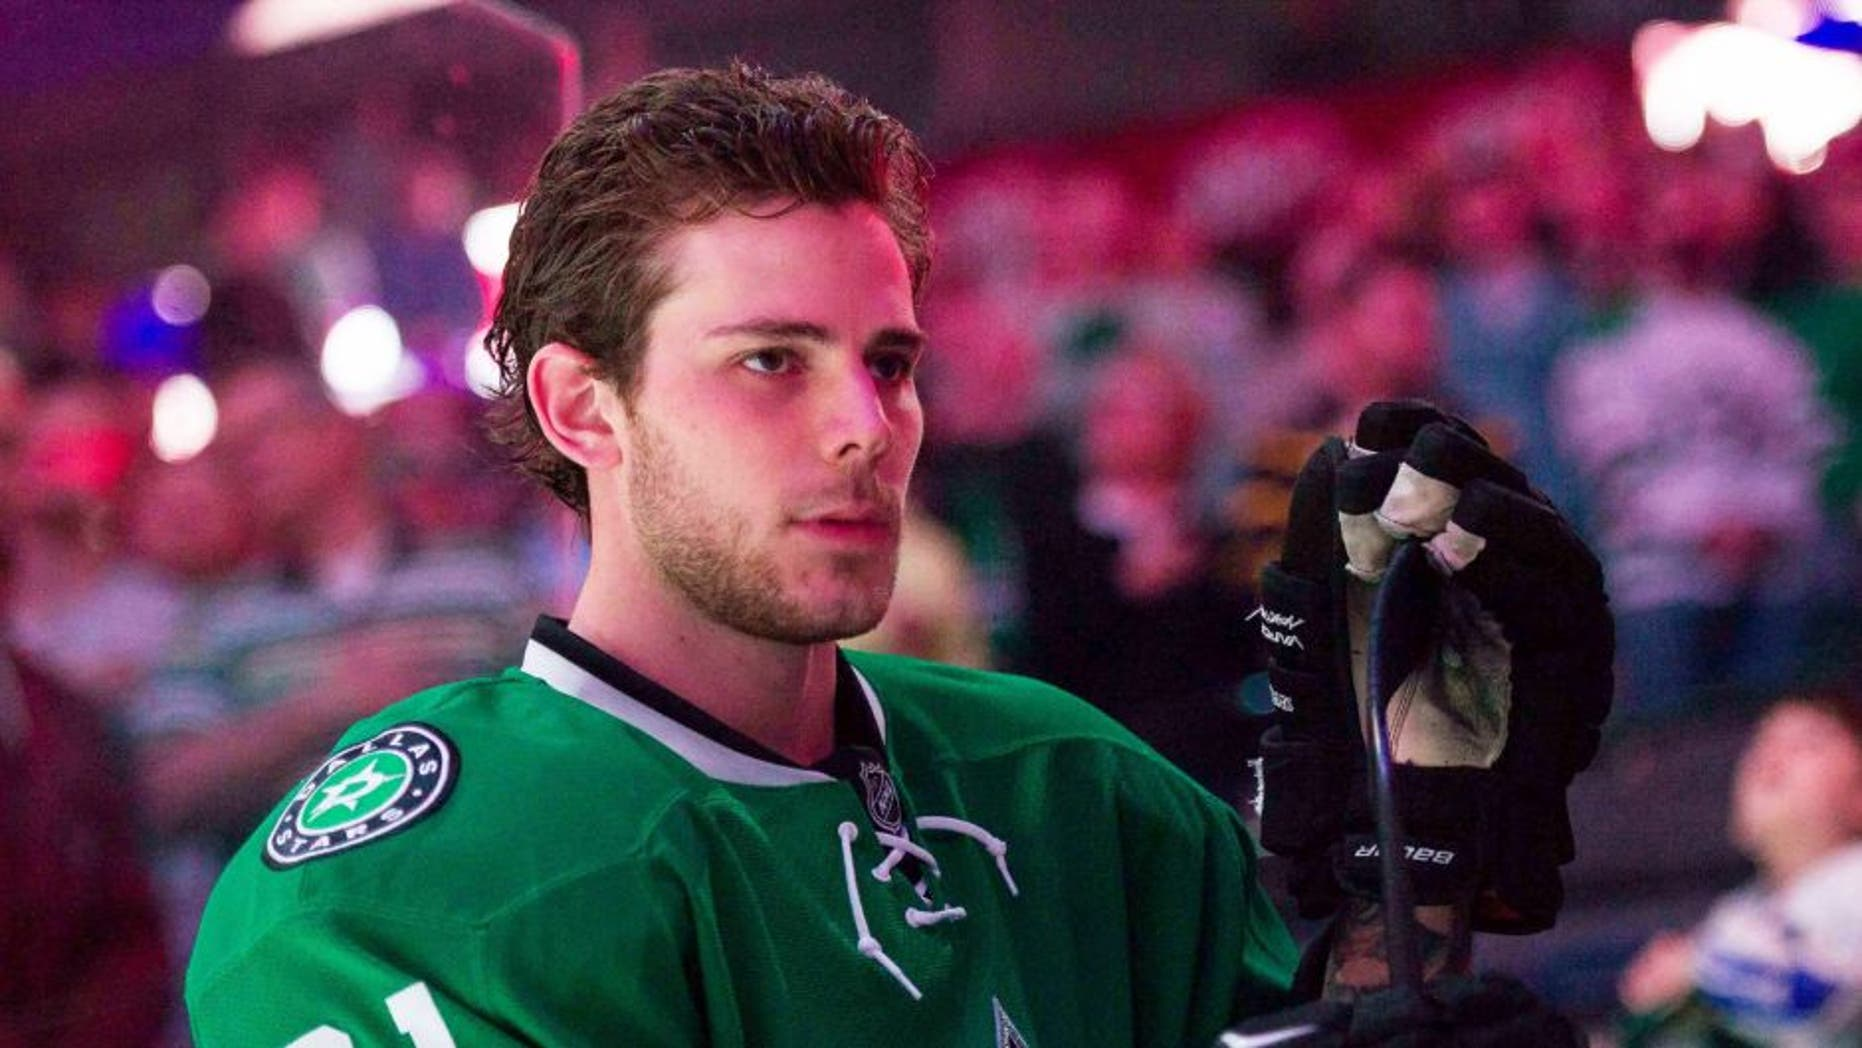 Apr 3, 2015; Dallas, TX, USA; Dallas Stars center Tyler Seguin (91) prepares to face the St. Louis Blues at the American Airlines Center. The Blues defeat the Stars 7-5. Mandatory Credit: Jerome Miron-USA TODAY Sports